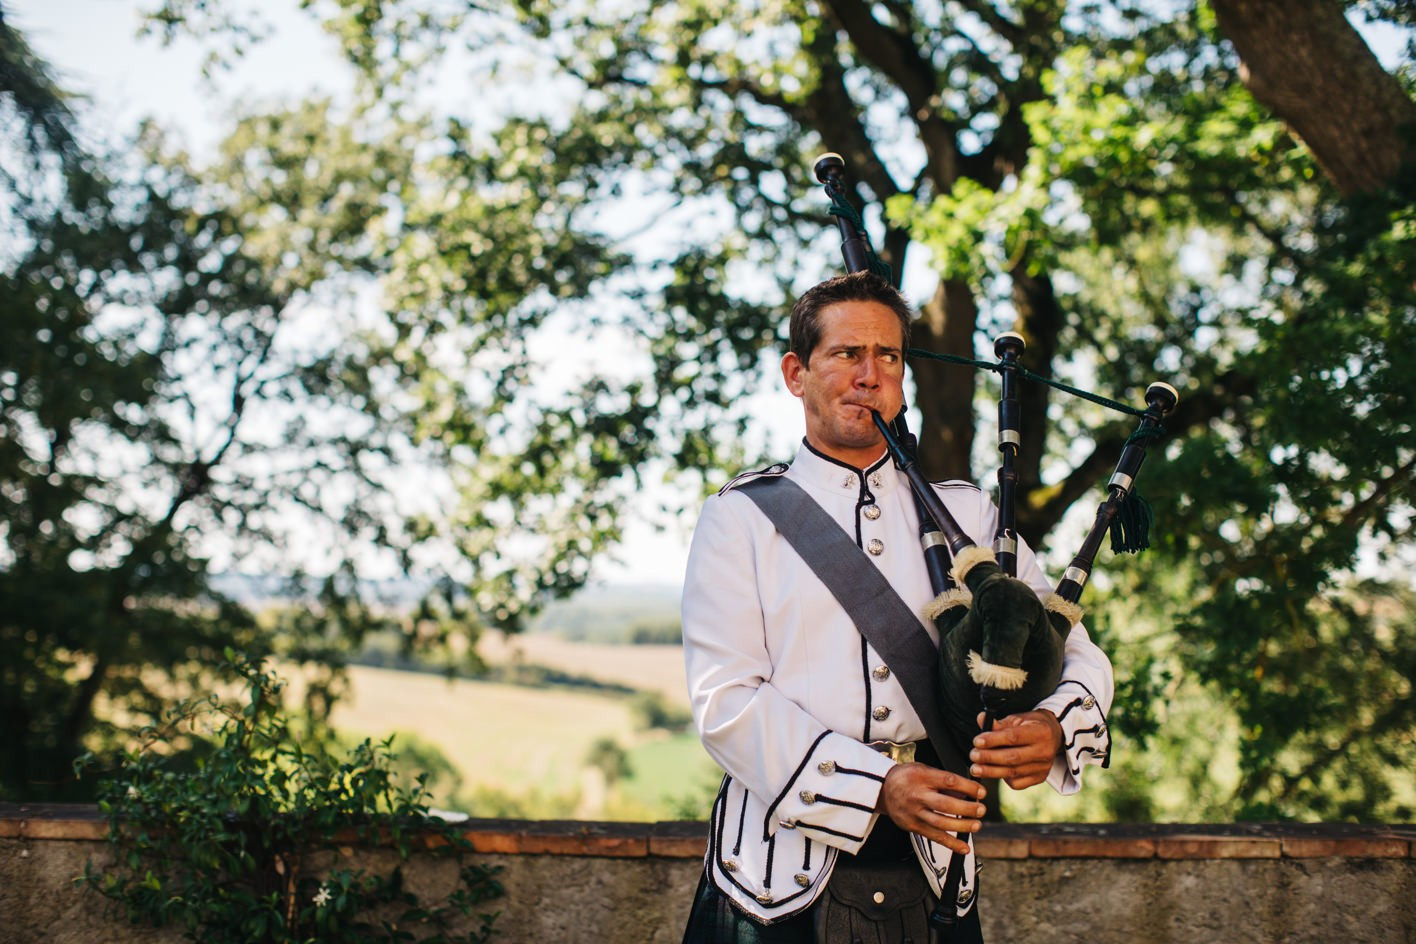 scottish bagpipes at french wedding